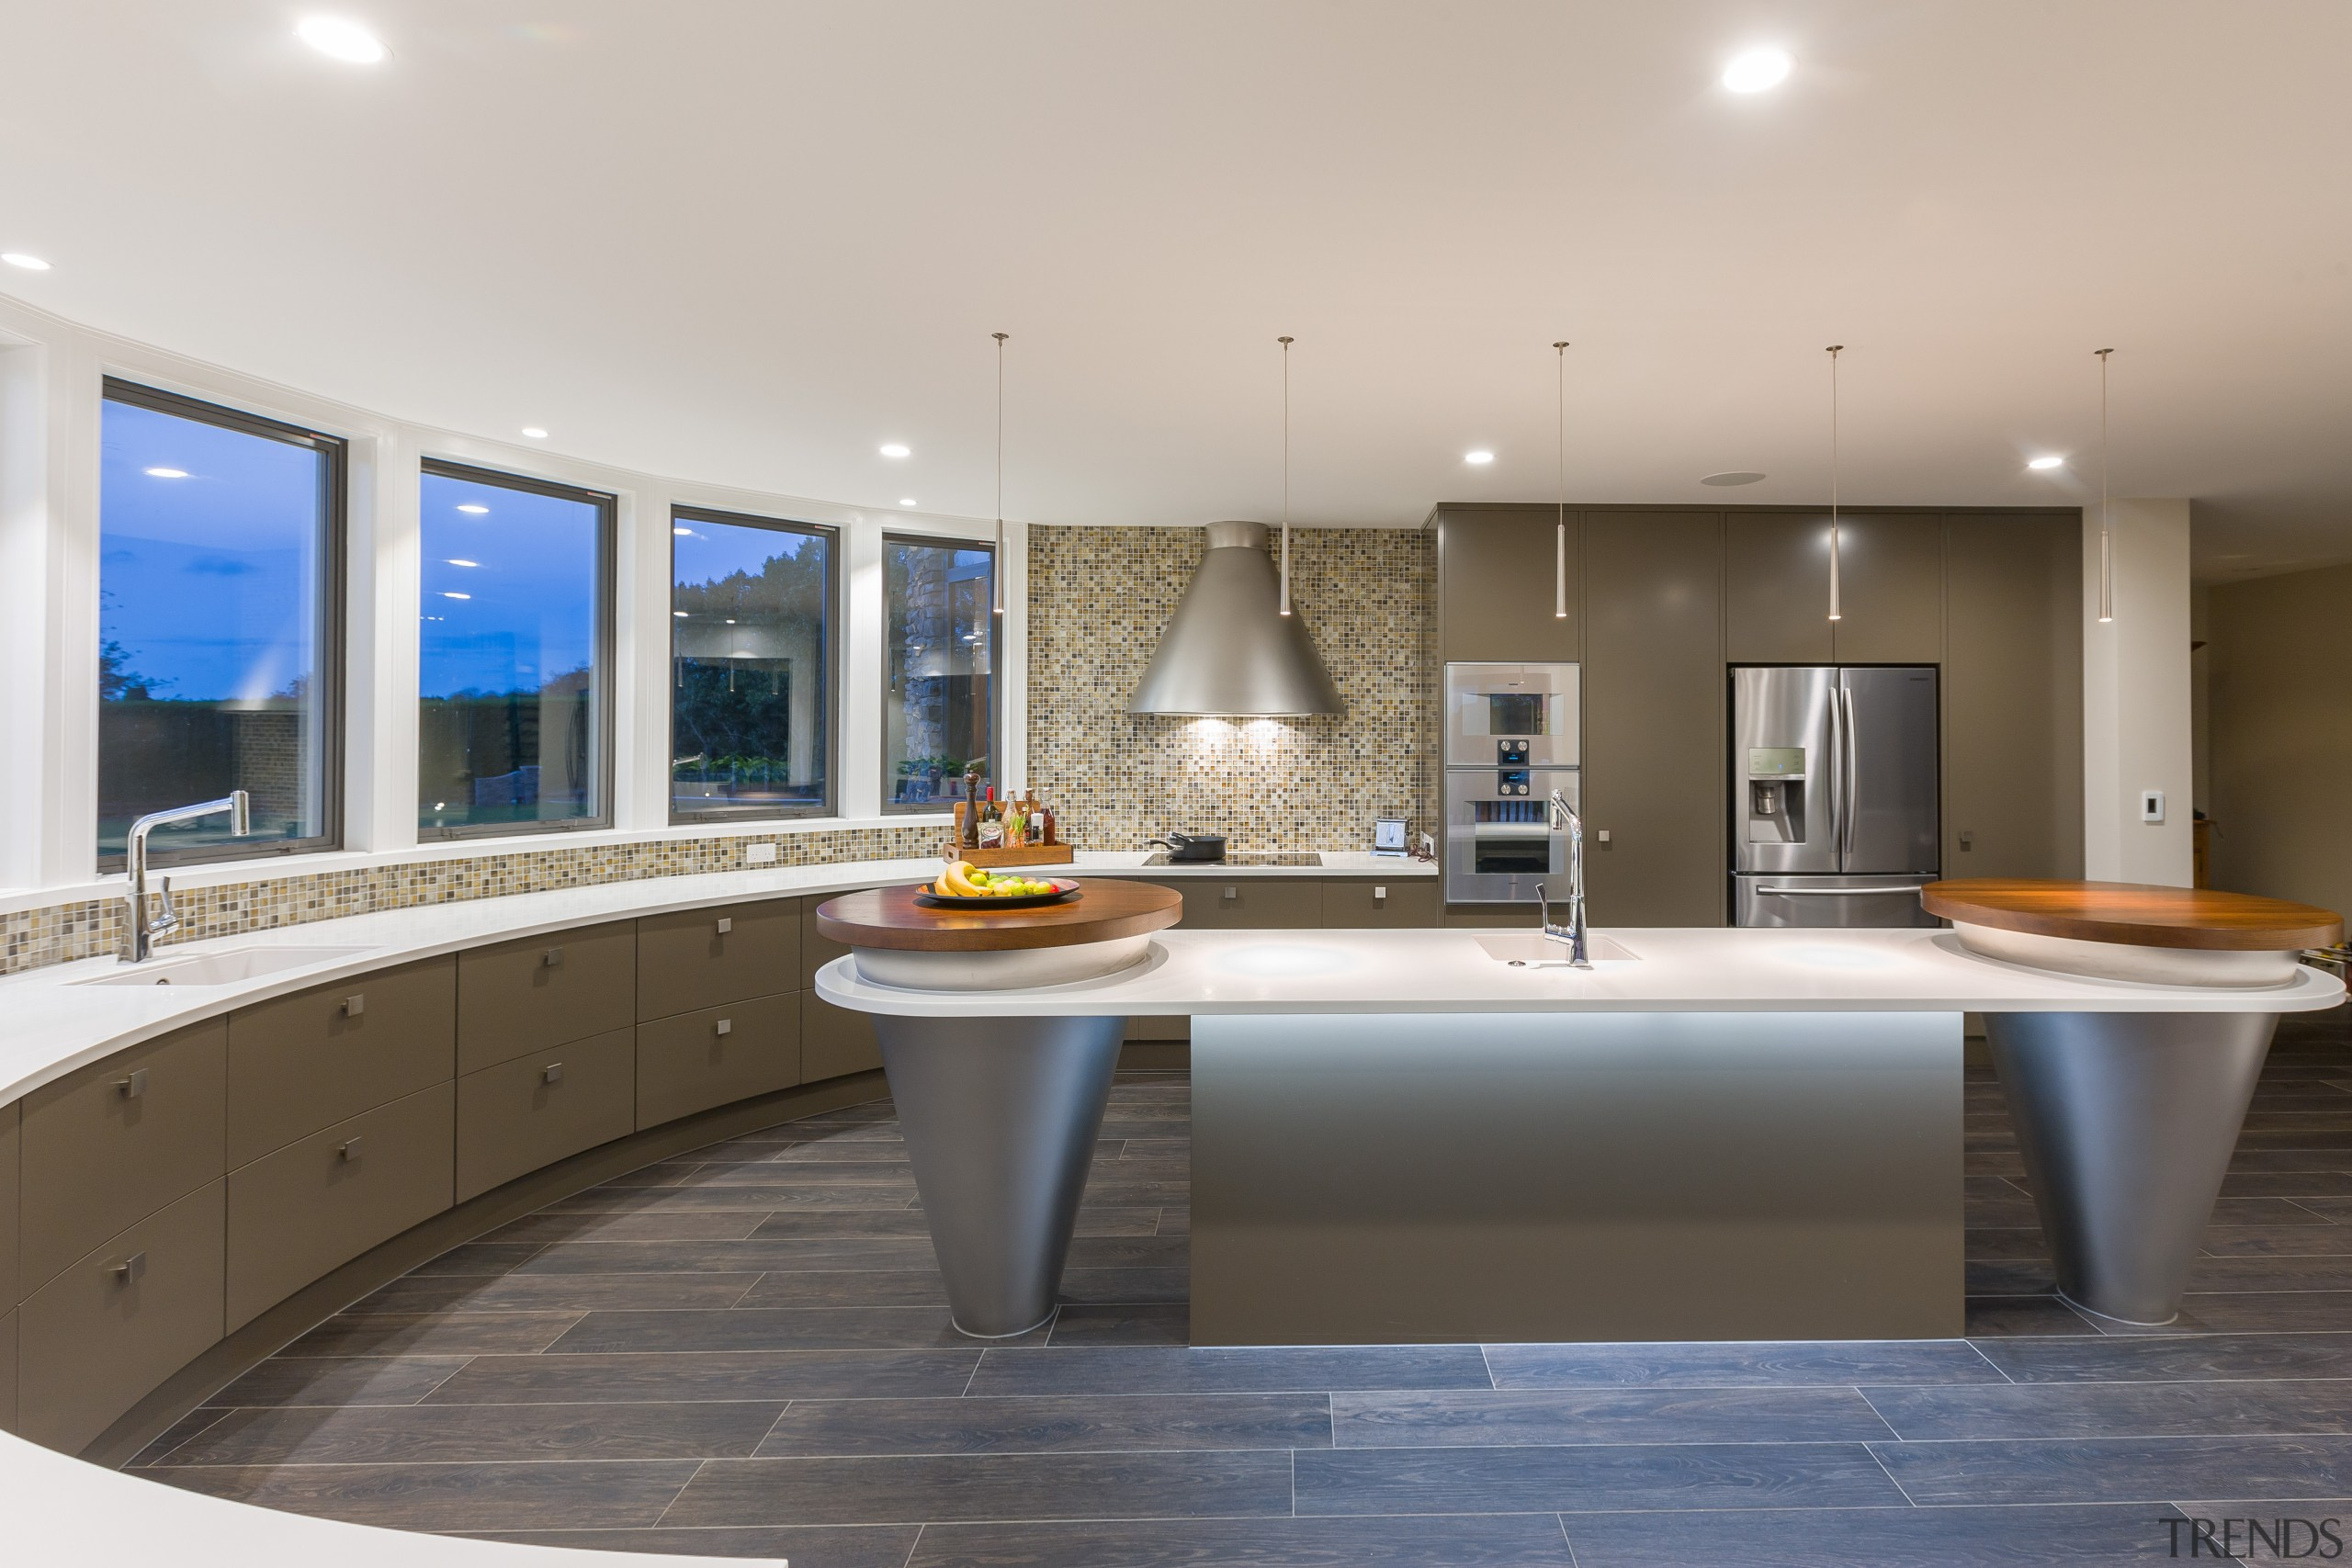 This islands conical elements echo the form of countertop, estate, interior design, kitchen, real estate, gray